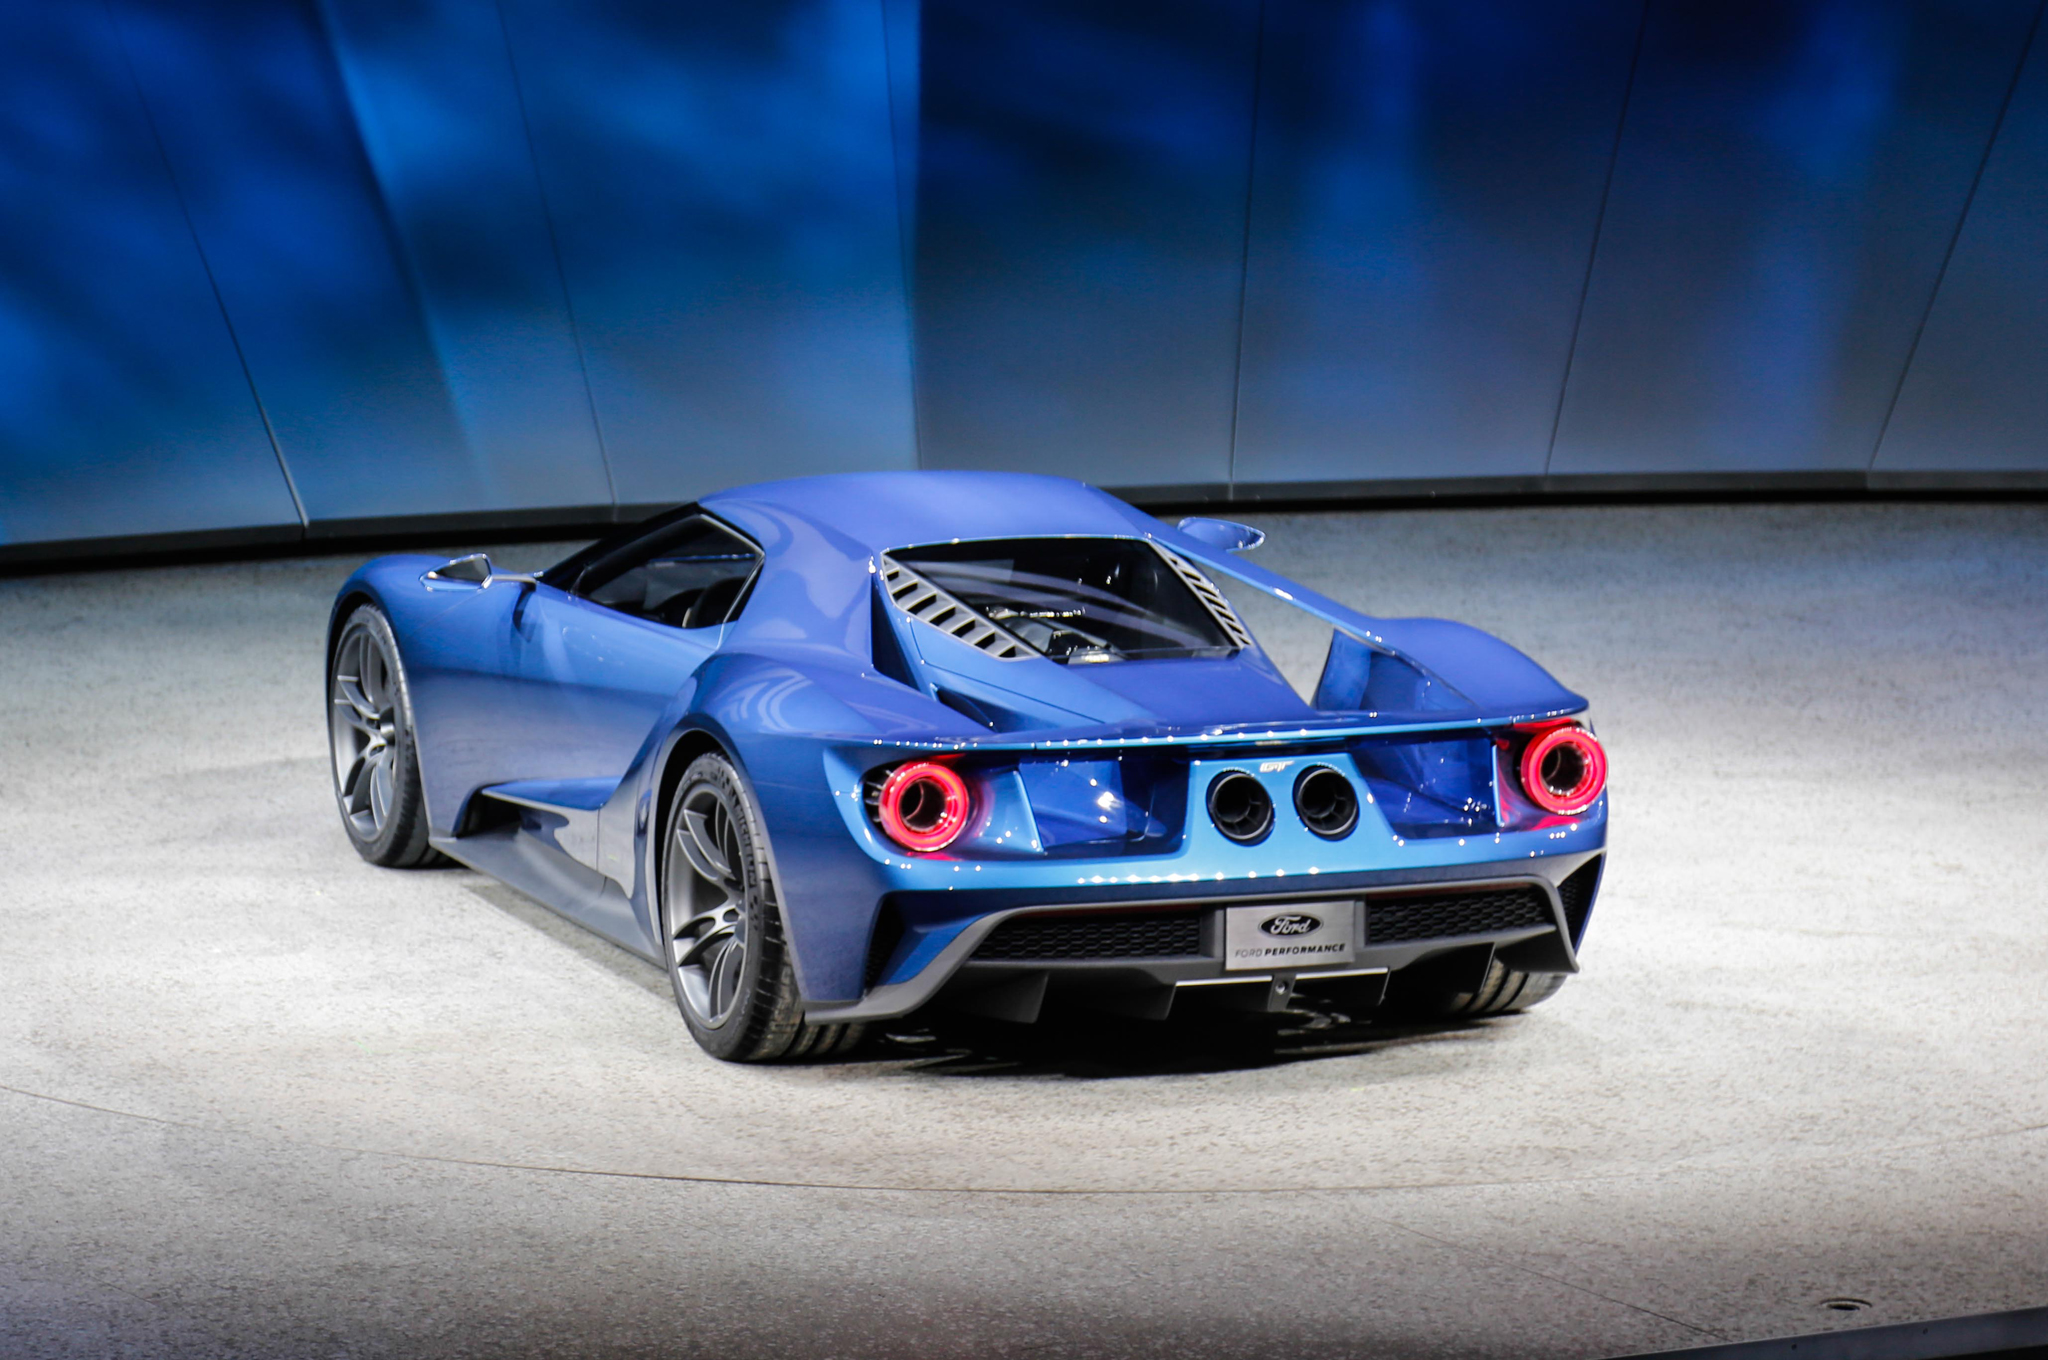 NAIAS 2015| The Ford GT Is Spectacularly Revived - TechDrive